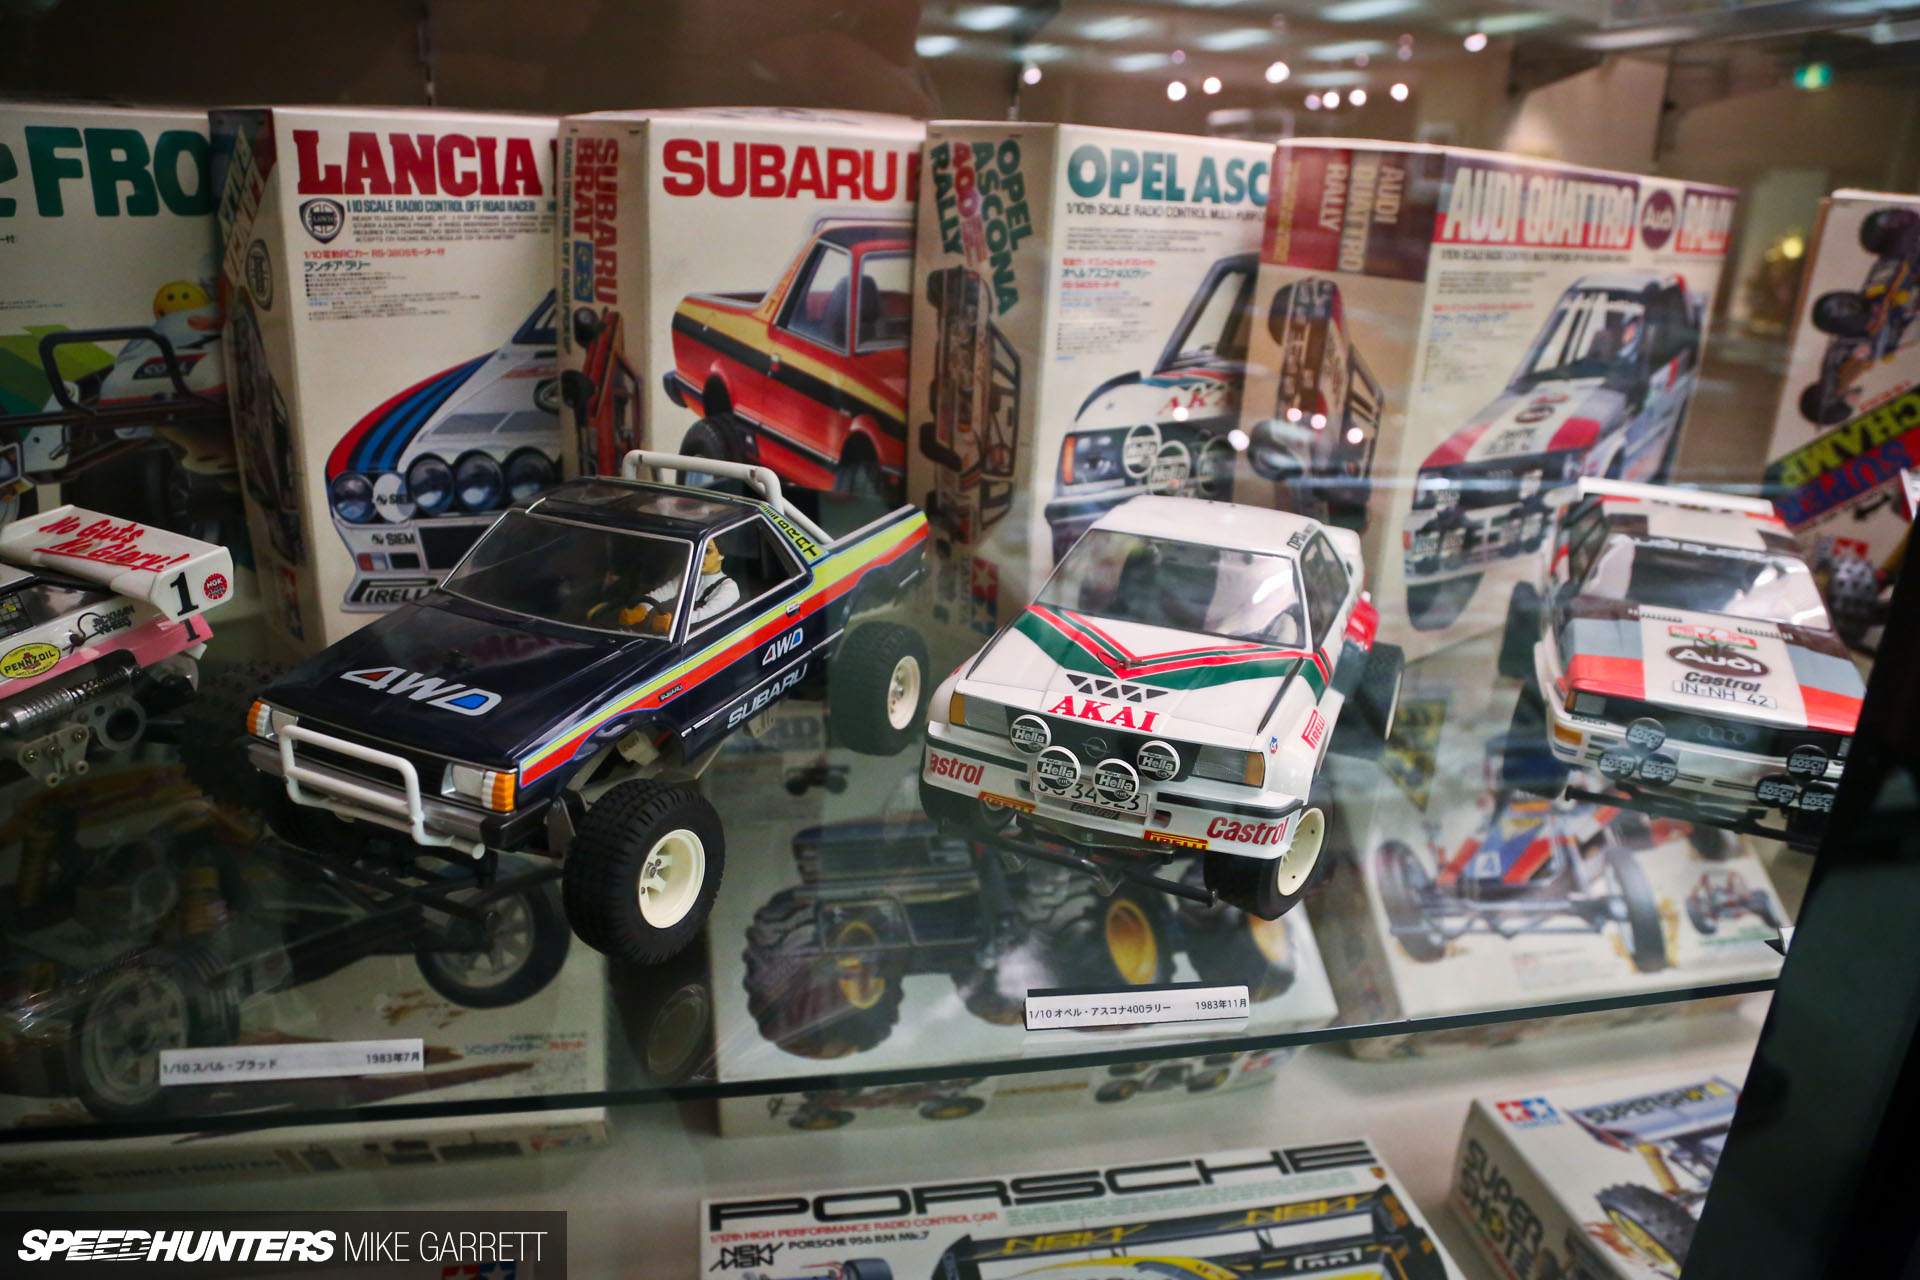 gas rc trucks with Hobby History The Tamiya Museum on Hobby History The Tamiya Museum together with Watch as well Tug O War Challenge Dodge Ram Cummins 2500 Vs Chevy Duramax 2500 as well Top 10 Best Remote Controlled Rc Cars Reviews 2016 2017 155kdt3cz also Images.